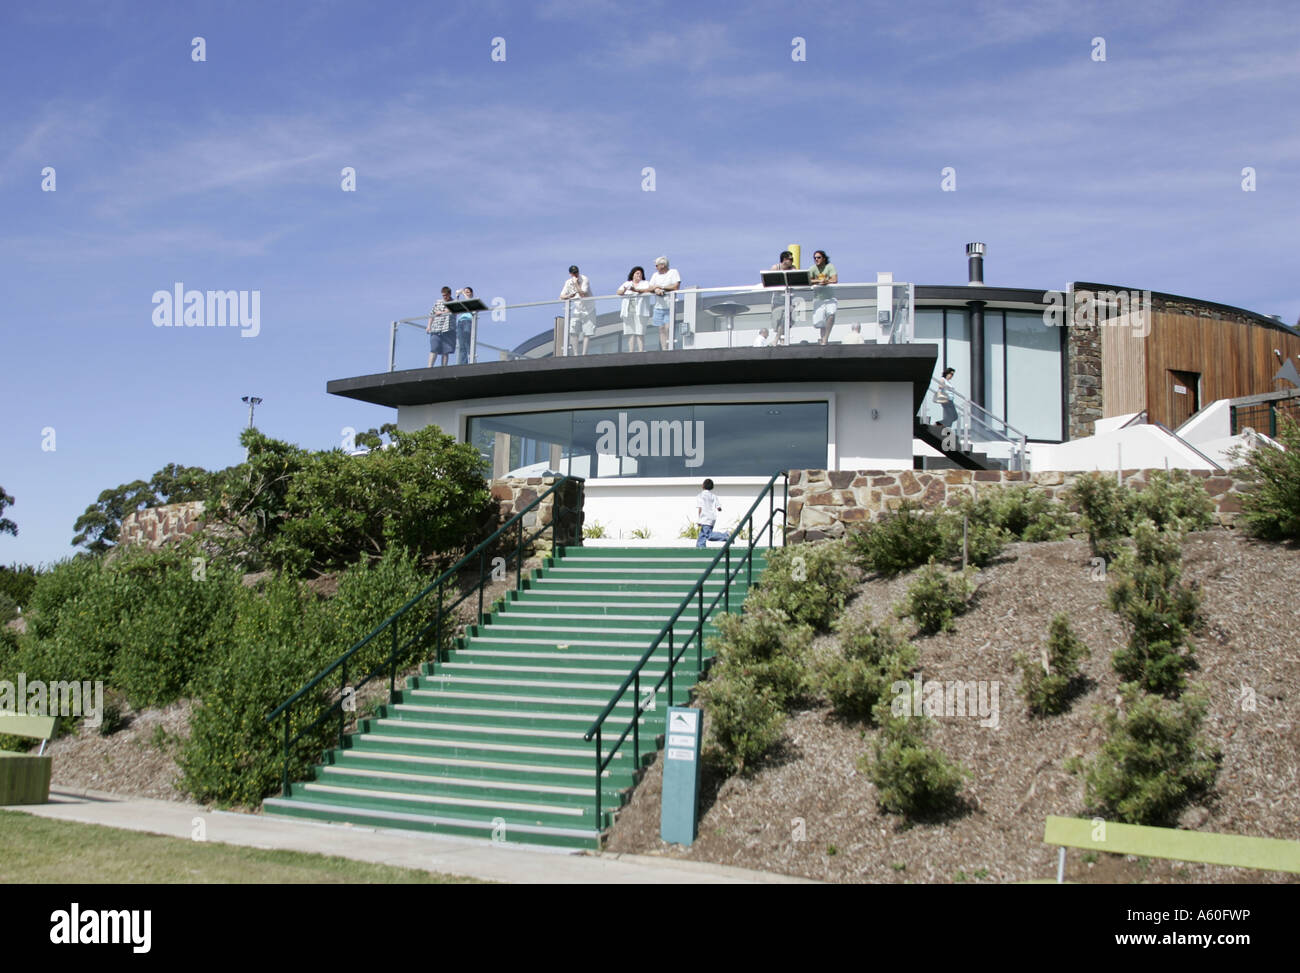 SkyHigh restaurant and viewing platform  on Mt.Dandenong in Victoria,Australia. - Stock Image